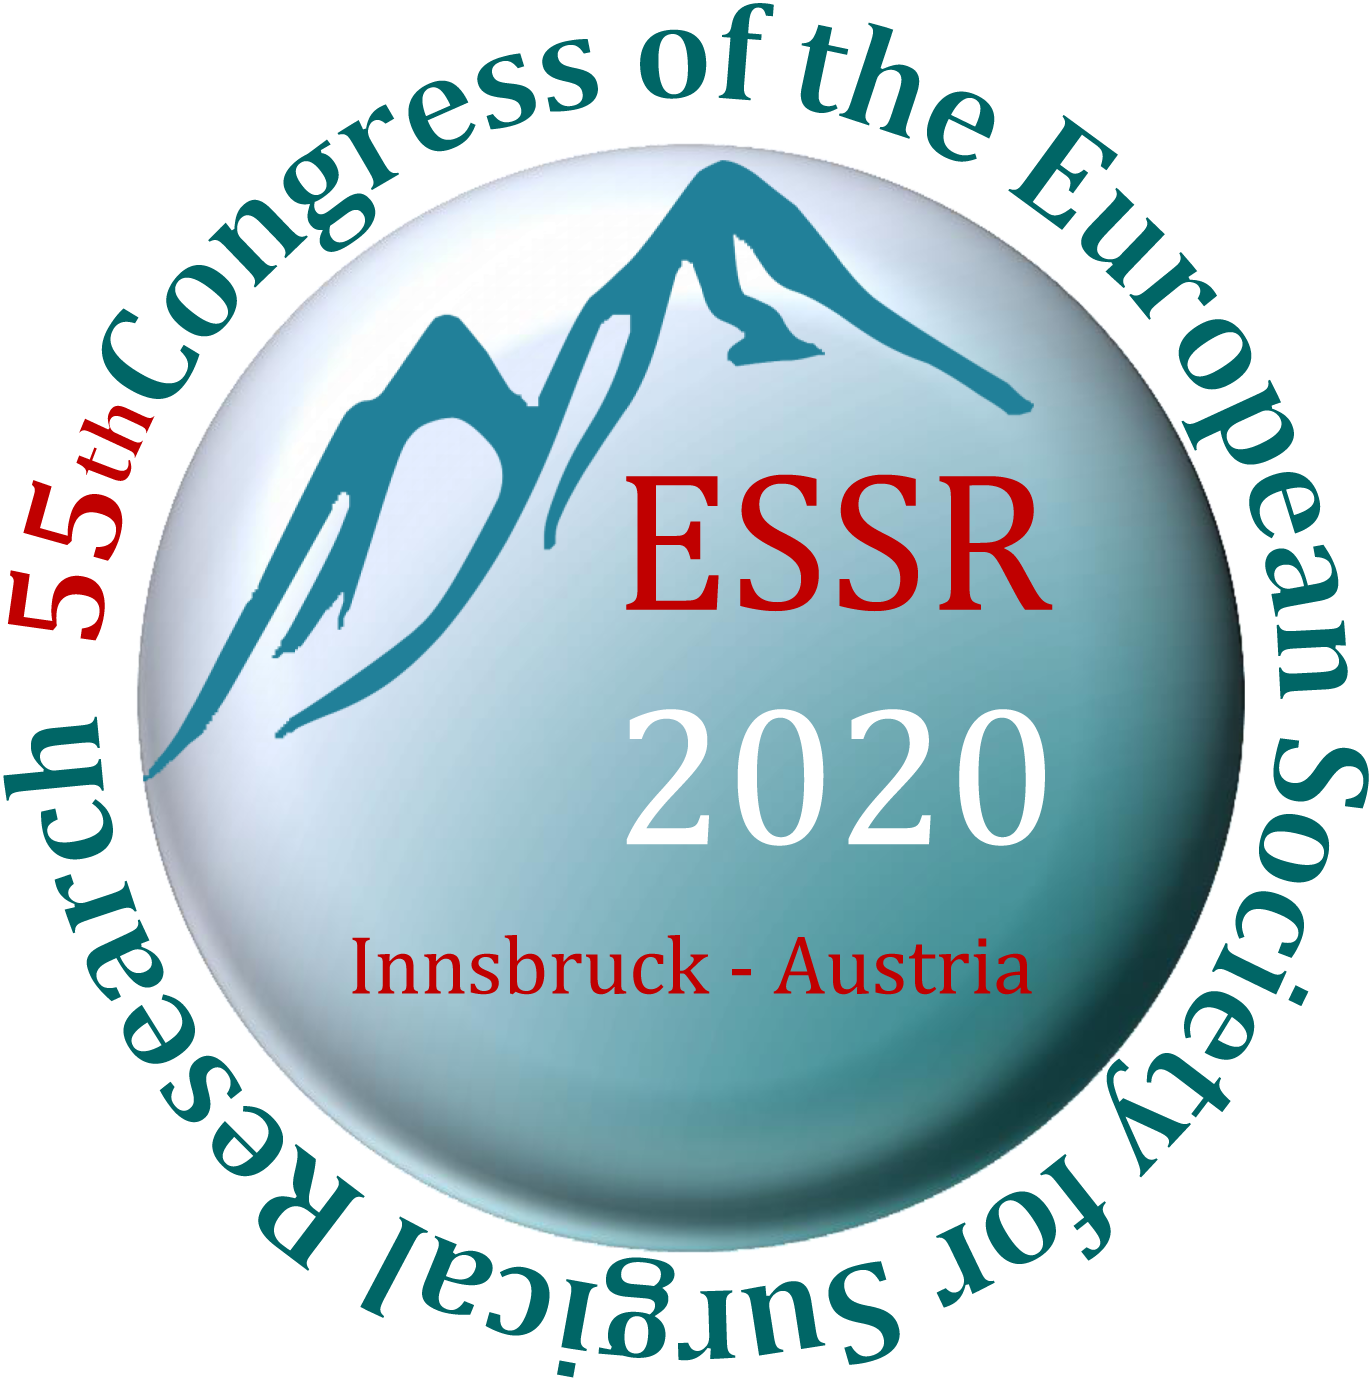 55th Congress of the European Society for Surgical Research & 44th Congress of the Austrian Society for Surgical Research